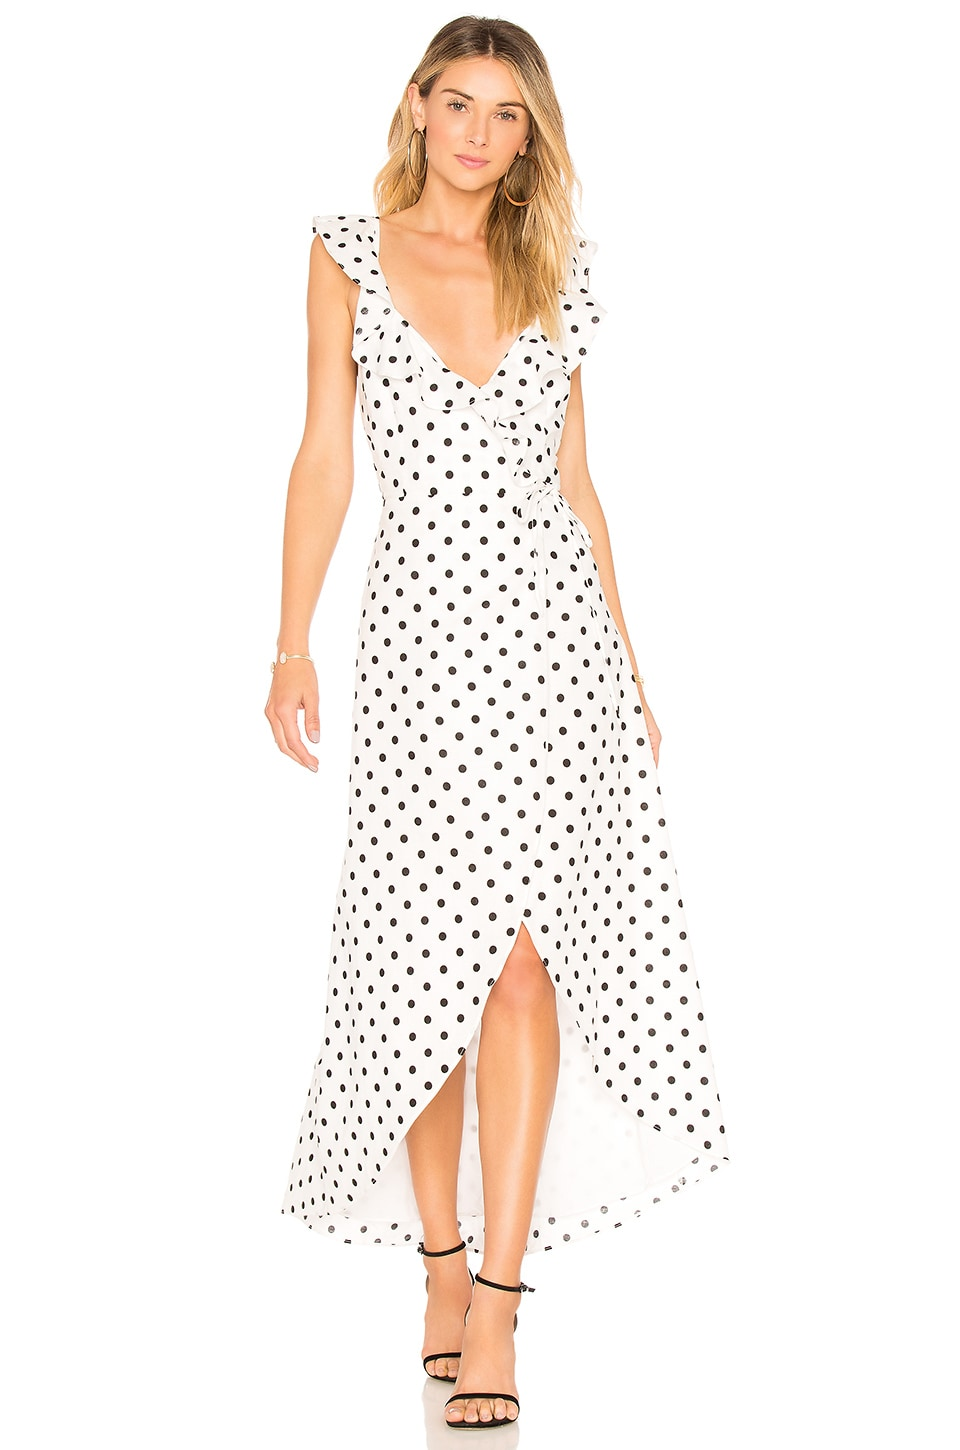 Privacy Please Fillmore Dress in White Dot